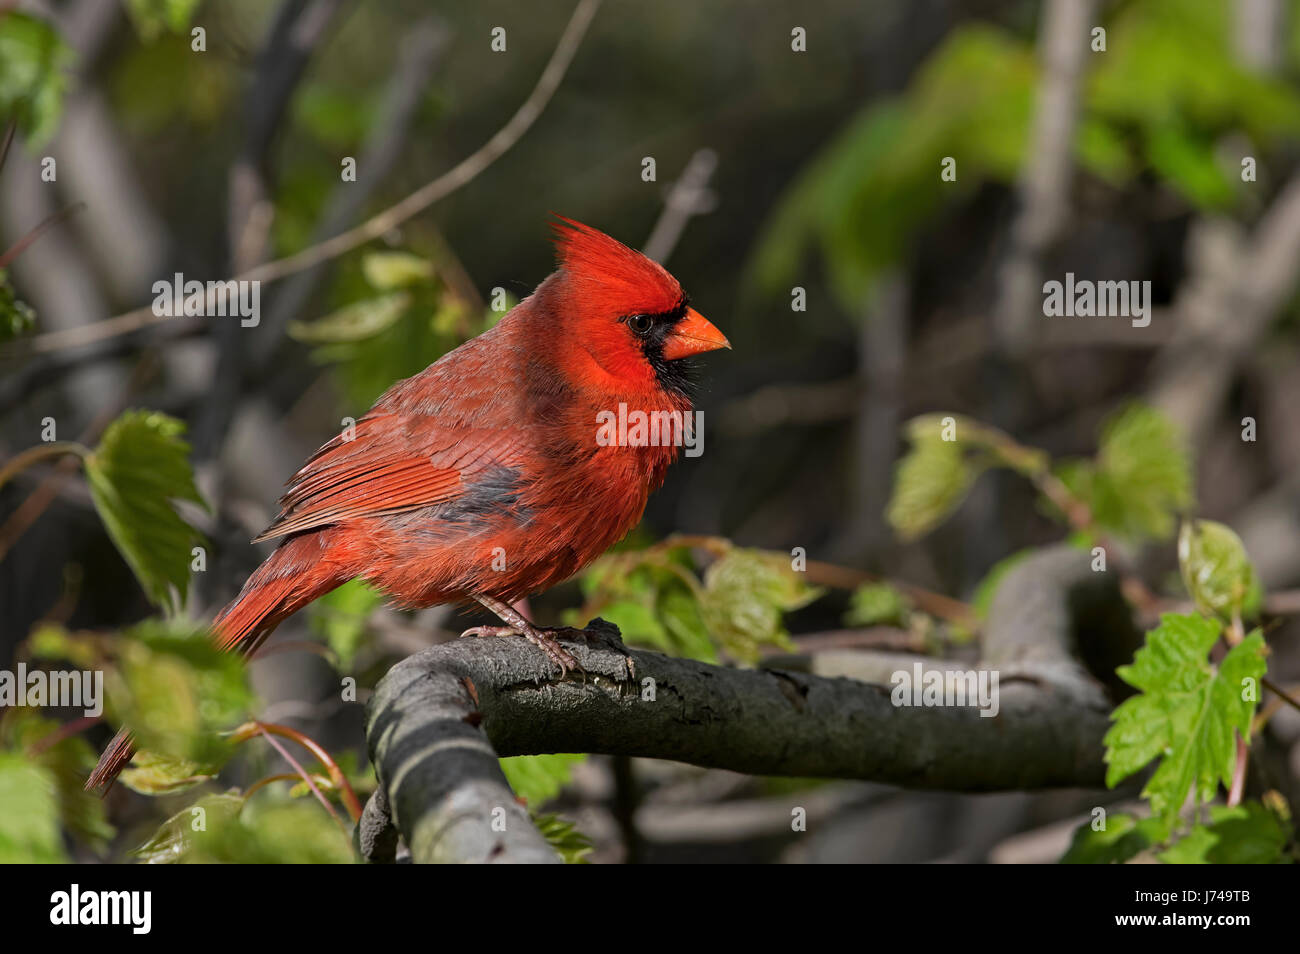 Cardinal perched on a shaded branch in a dark forest. They are in the family Cardinalidae, and are passerine birds - Stock Image